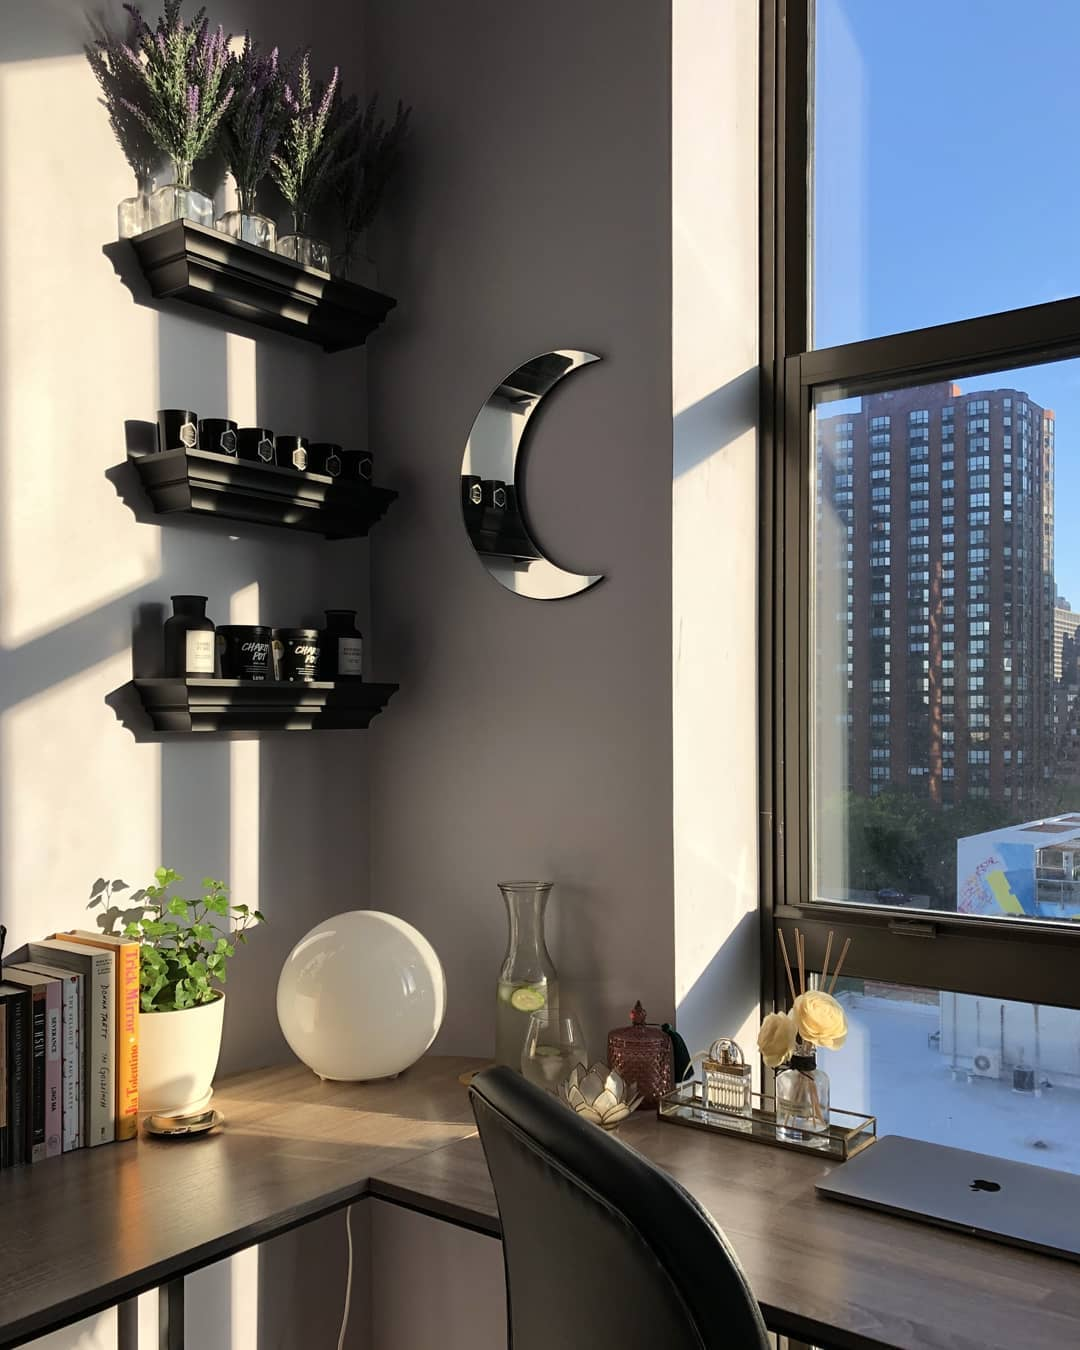 interior design tips - window letting natural light in room